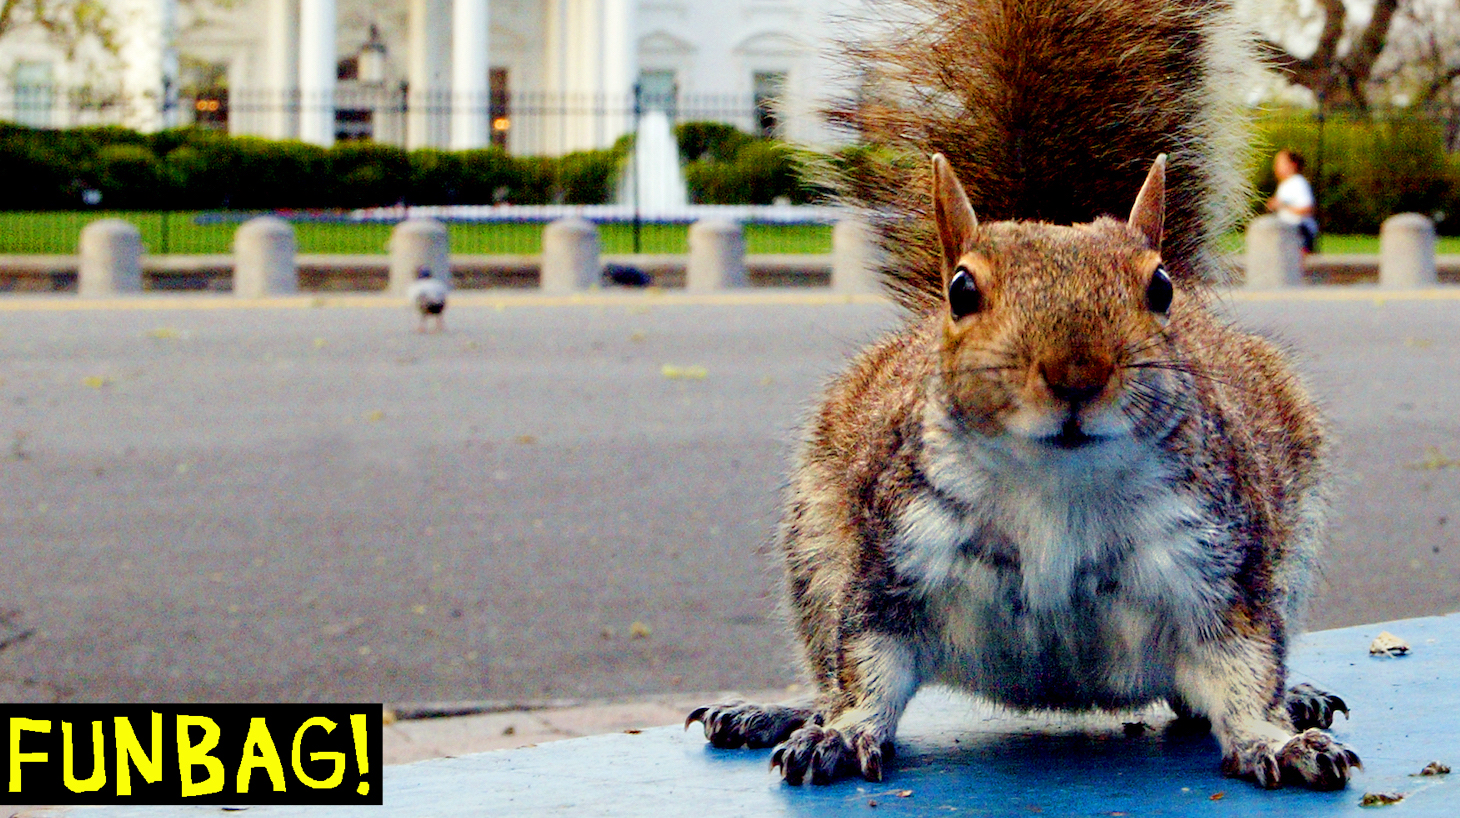 WASHINGTON: A hungry ground squirrel that looks pretty well fed hunts for food in Lafayette Park across from the White House early 10 April, 2002 as the sun starts to rise over the Washington, DC, area. AFP PHOTO Paul J. Richards (Photo credit should read PAUL J. RICHARDS/AFP via Getty Images)